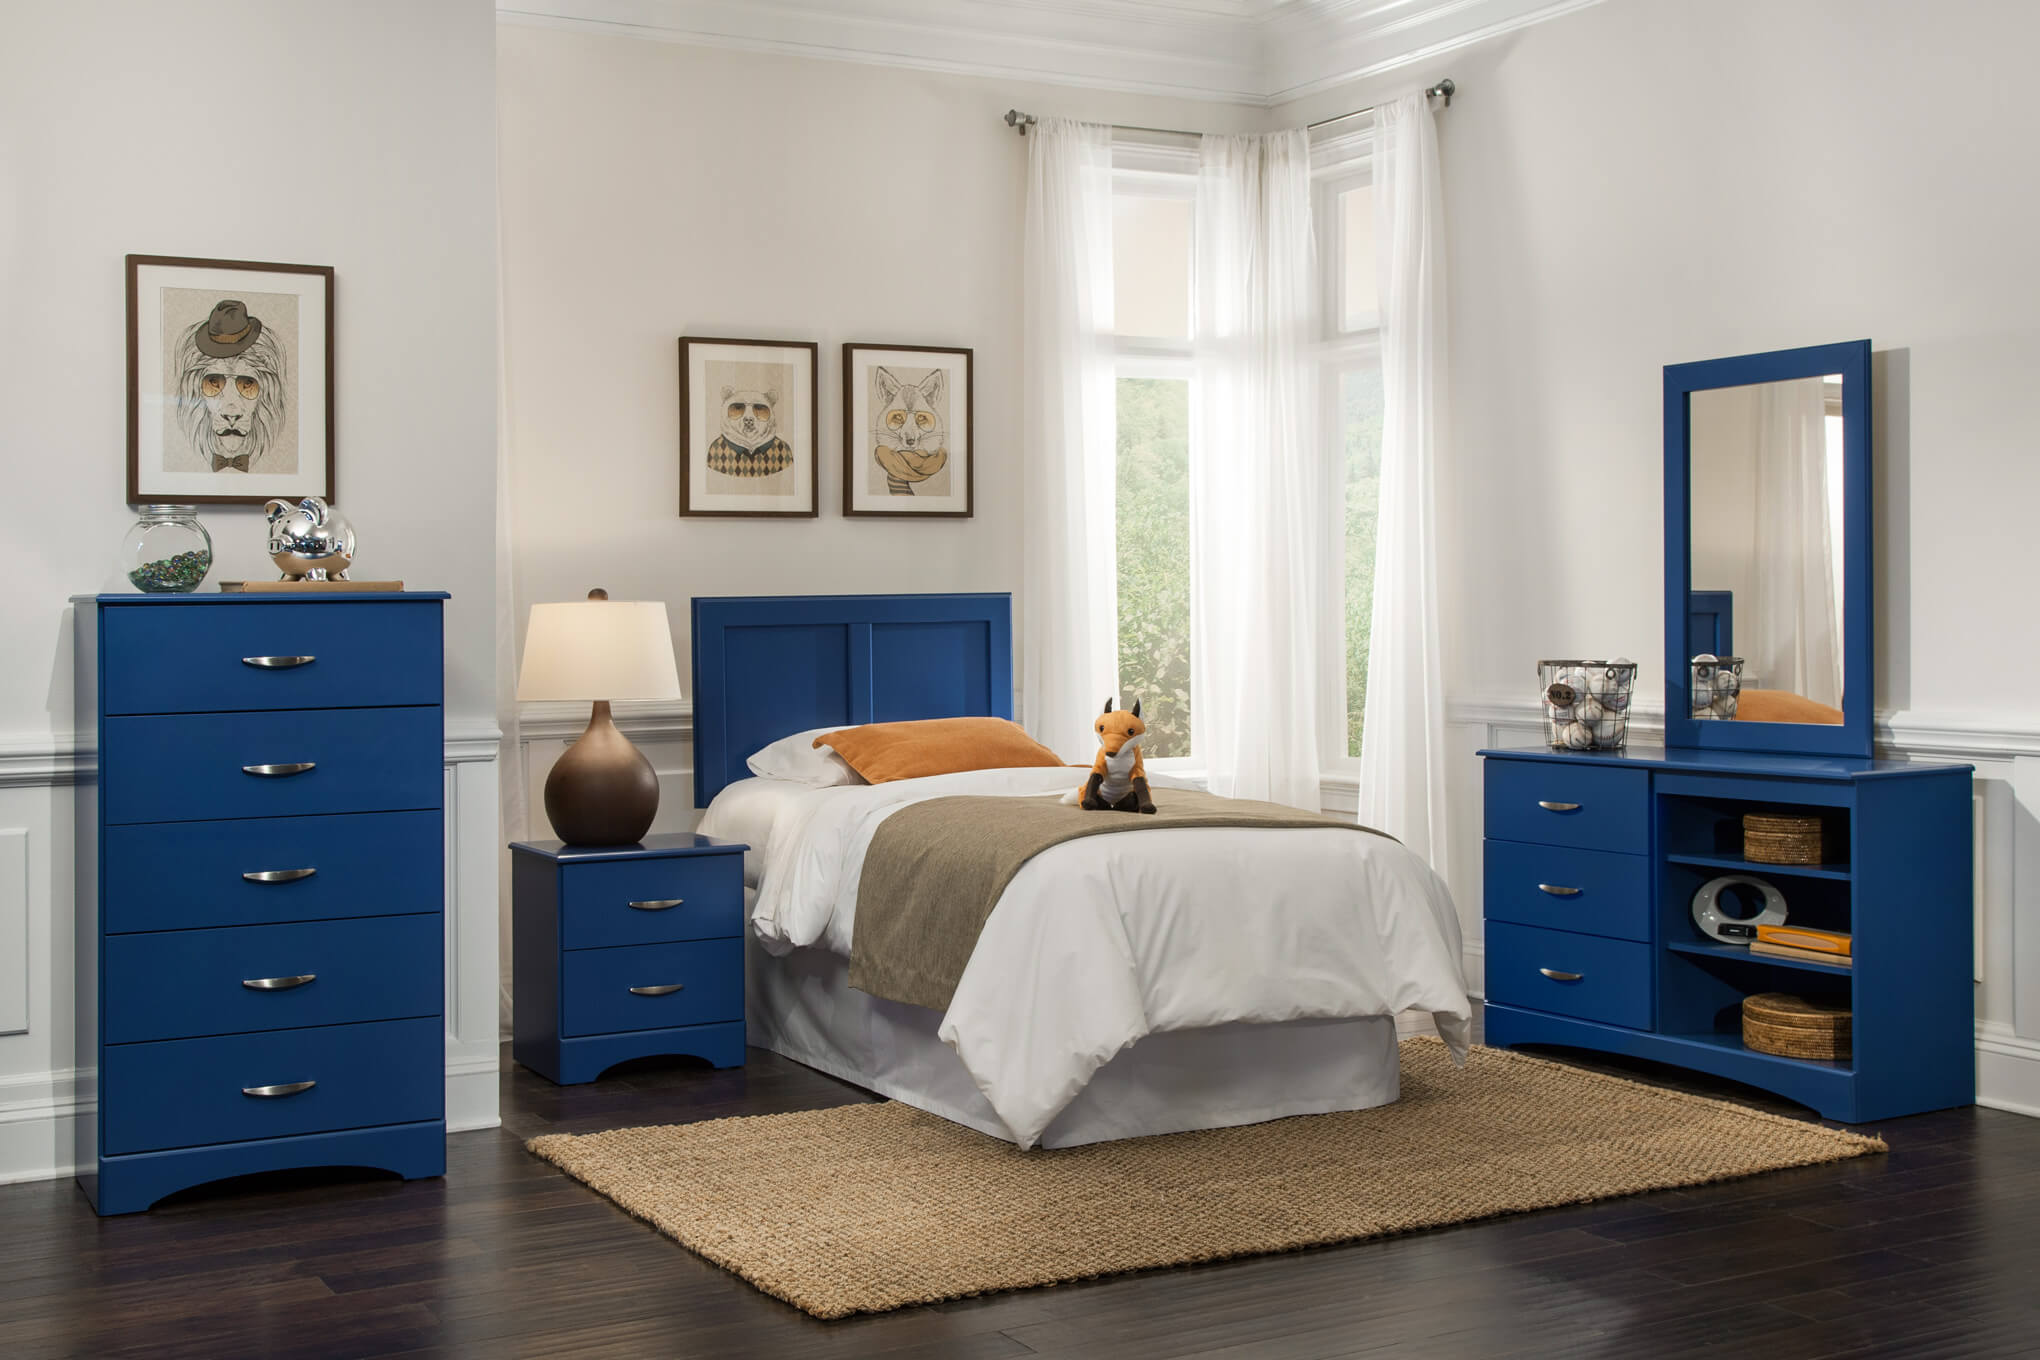 Kith Royal Blue Bedroom Set | Kids\' Bedroom Sets